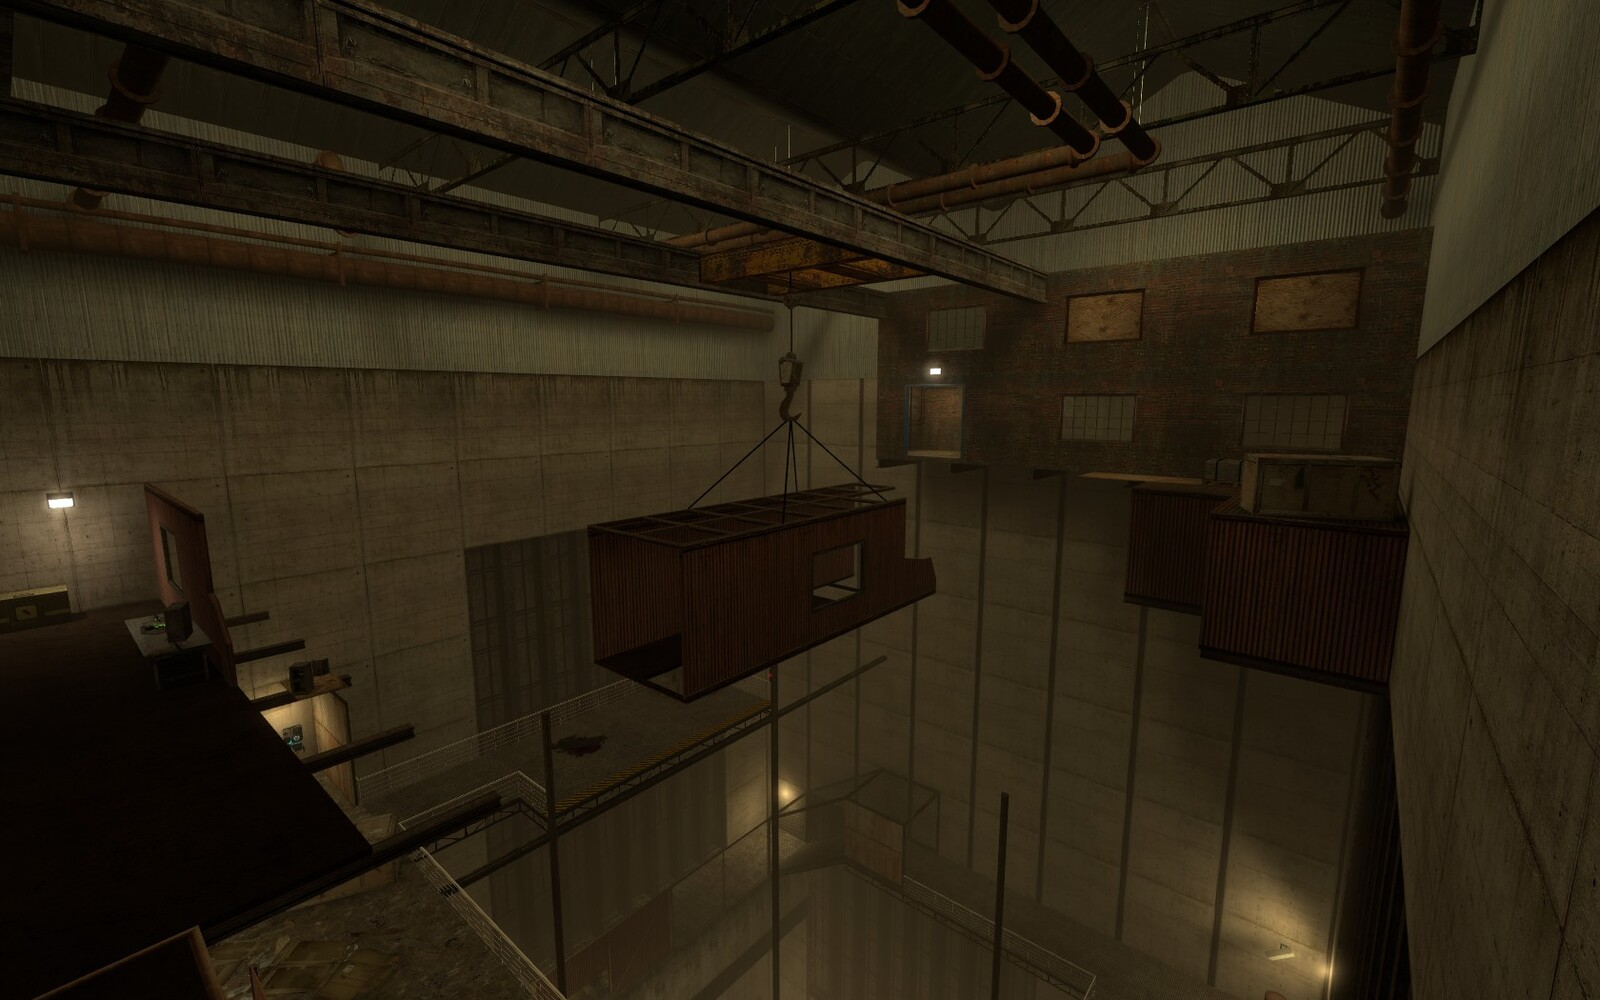 Lights where used in the level to highlight key areas that the player would find useful.